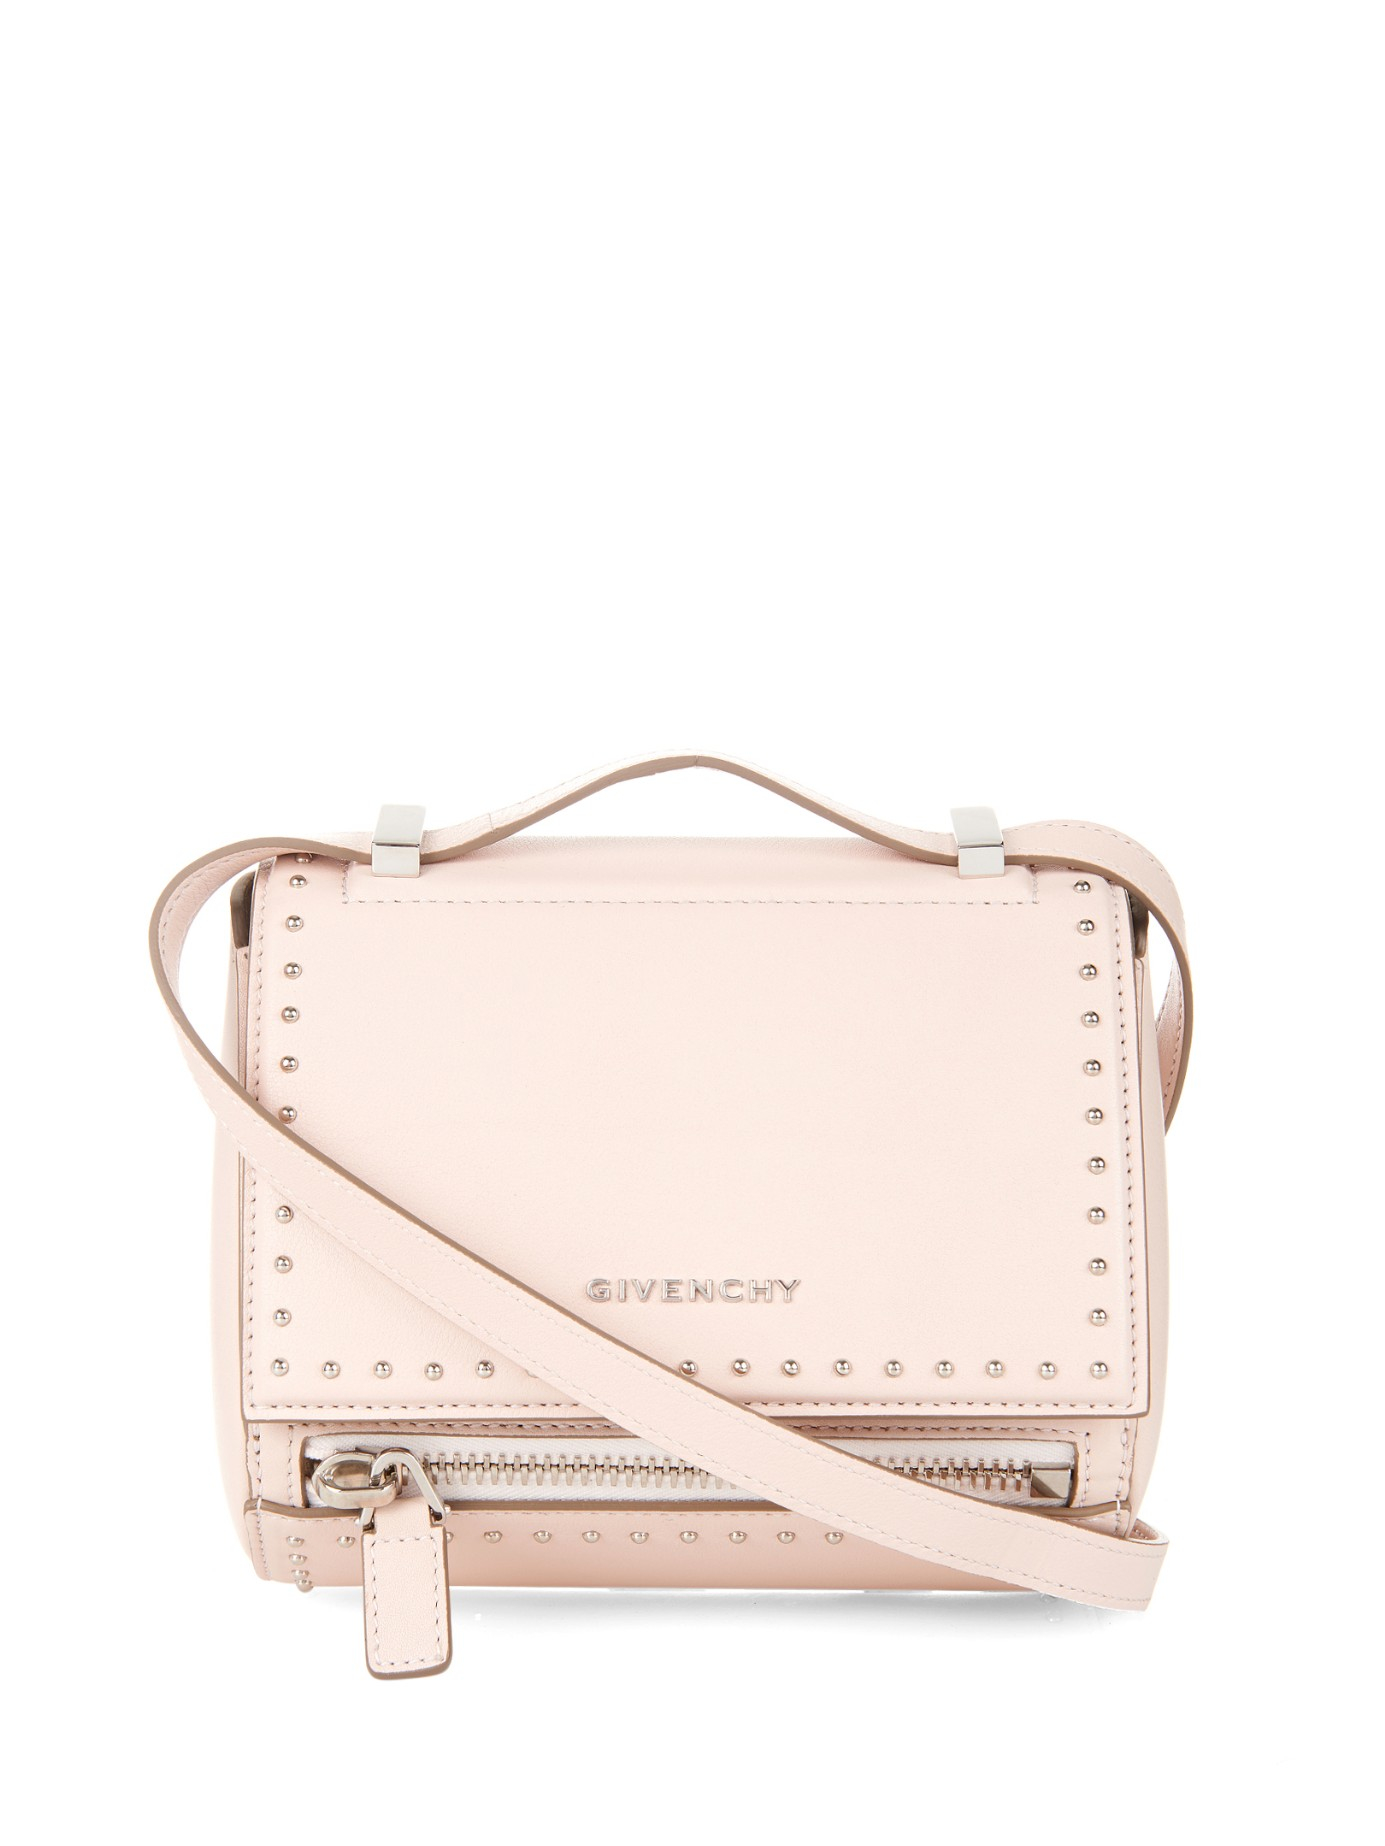 Lyst - Givenchy Pandora Box Mini Leather Bag in Natural 1caa69d494